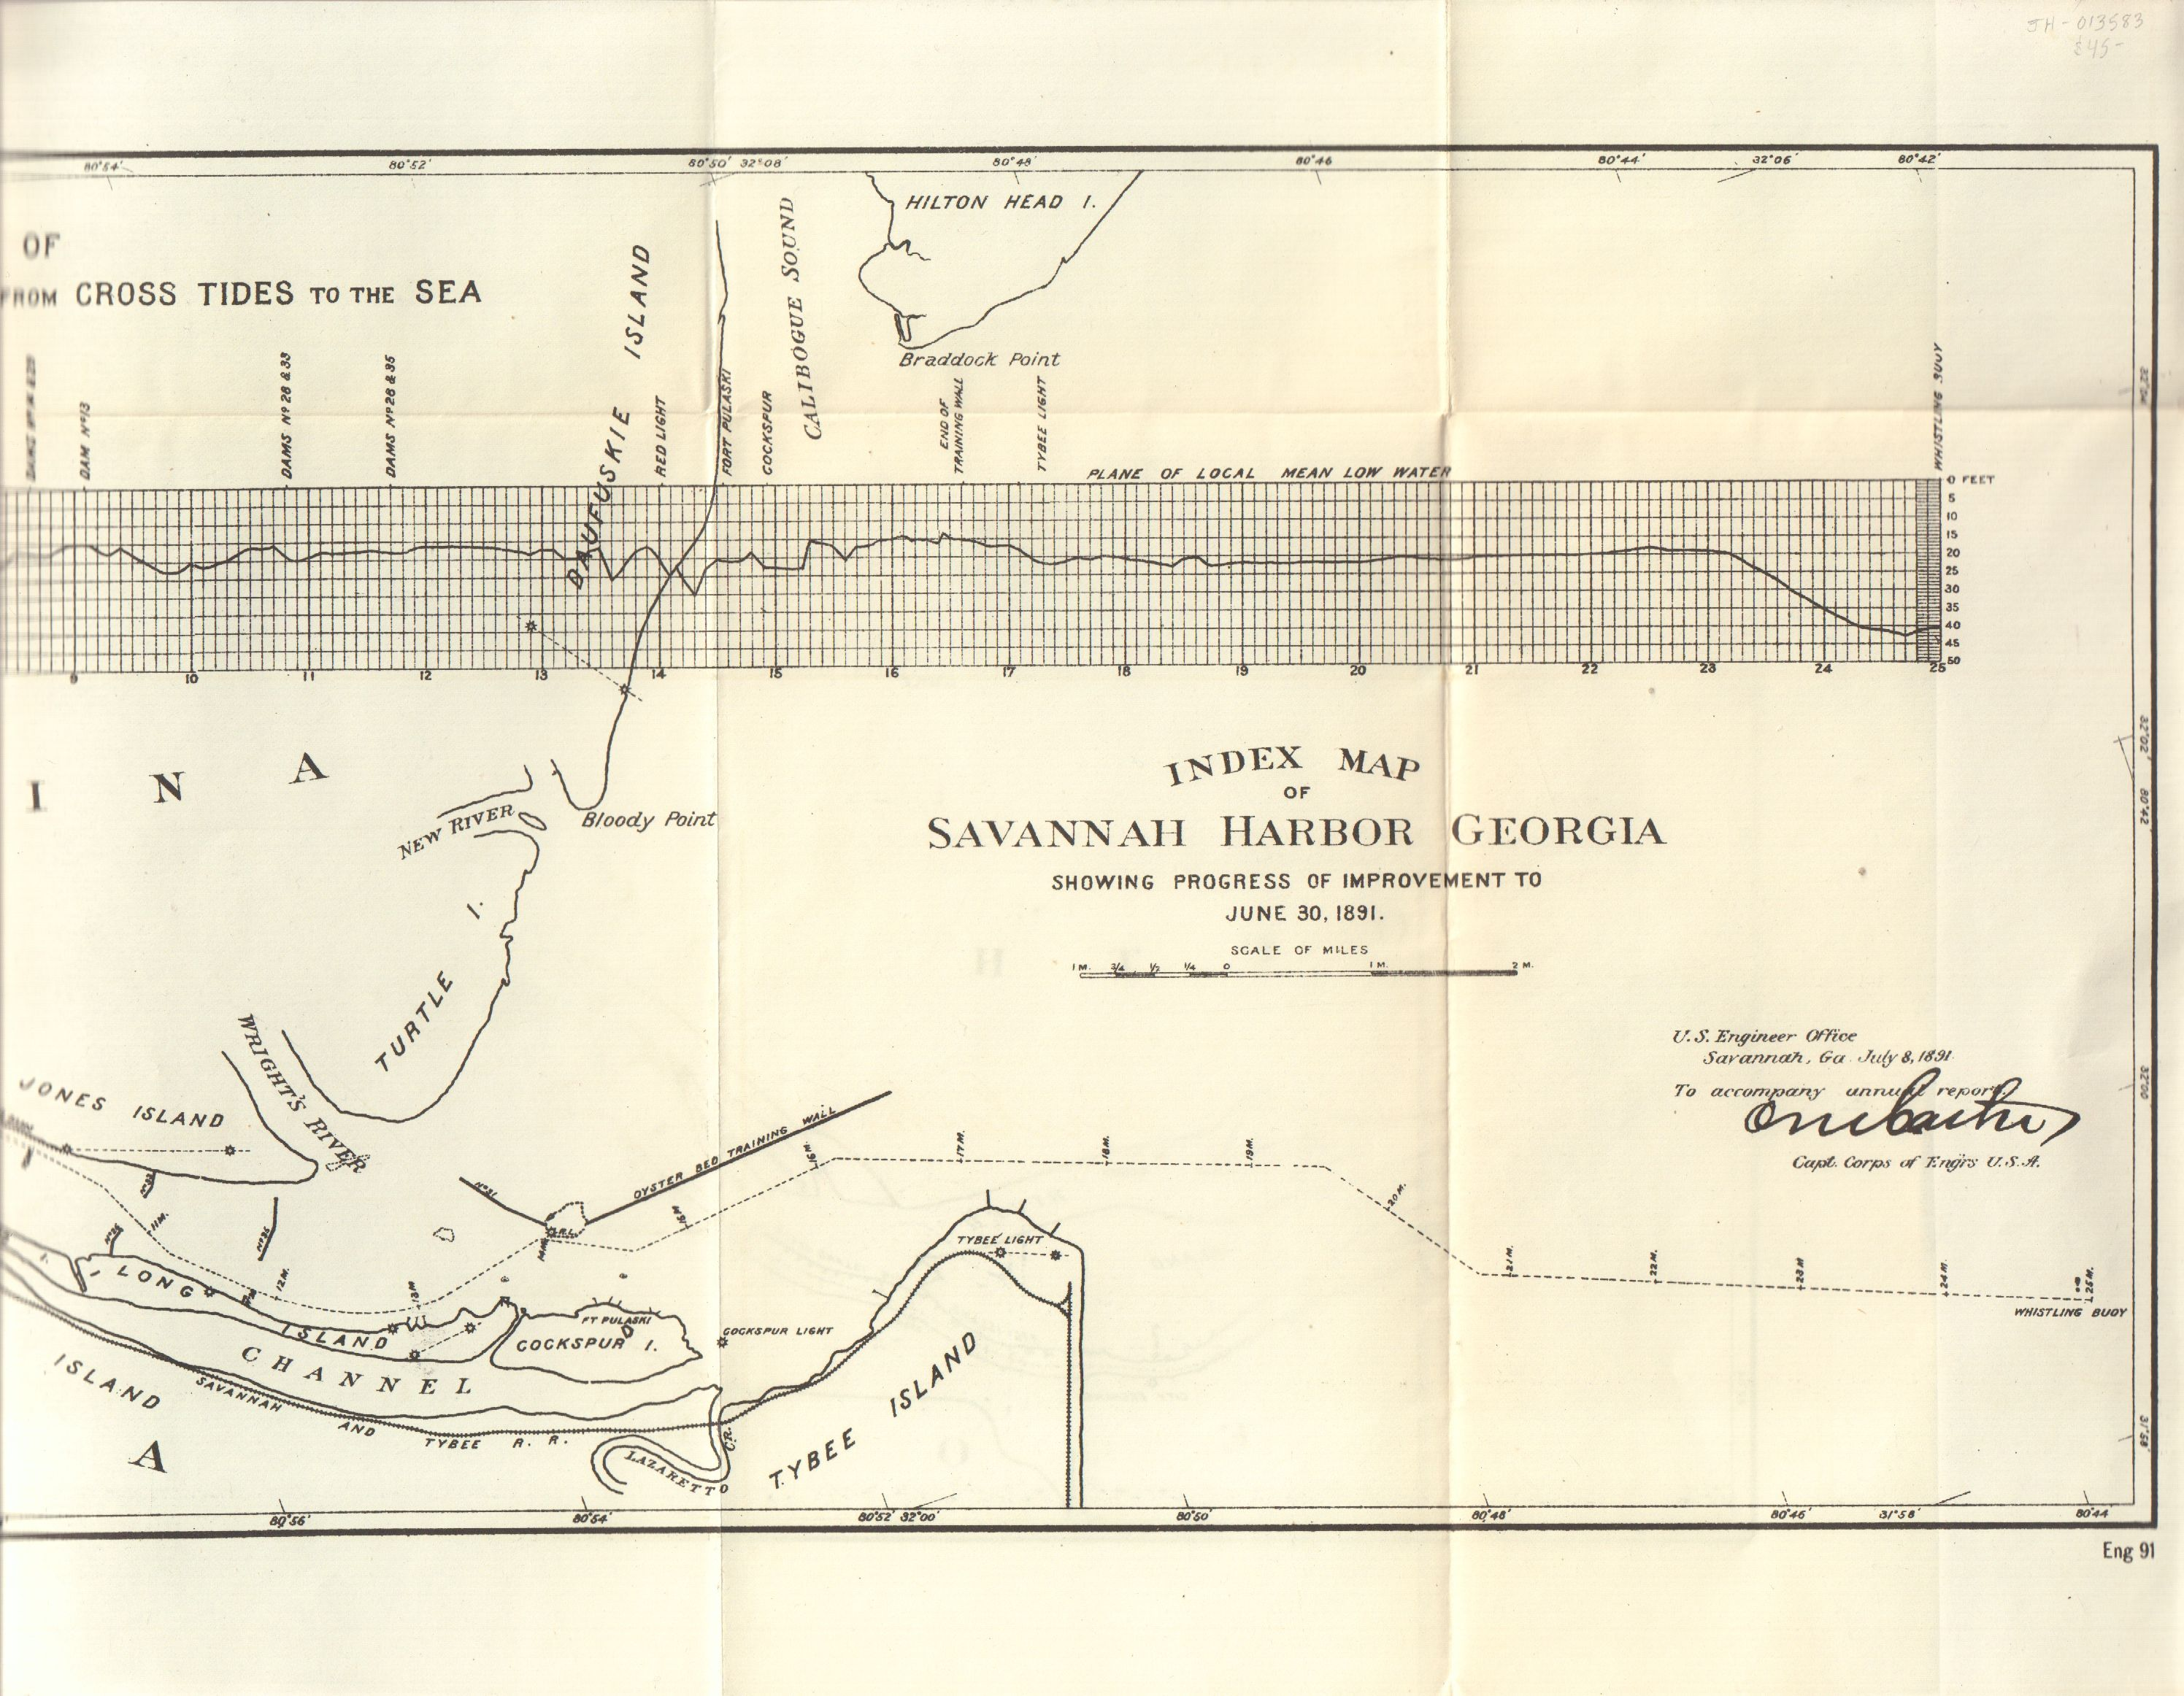 Details about U S Army Corp Of Engineers / Index Map of Savannah Harbor on savannah sears, savannah neighborhood map, colonial savannah map, savannah map usa, savannah georgia, savannah florida, charleston sc on a state map, savannah new york, savannah waterways map, savannah wwe, savannah texas, savannah world map, savannah north carolina, savannah county map, savannah united states,